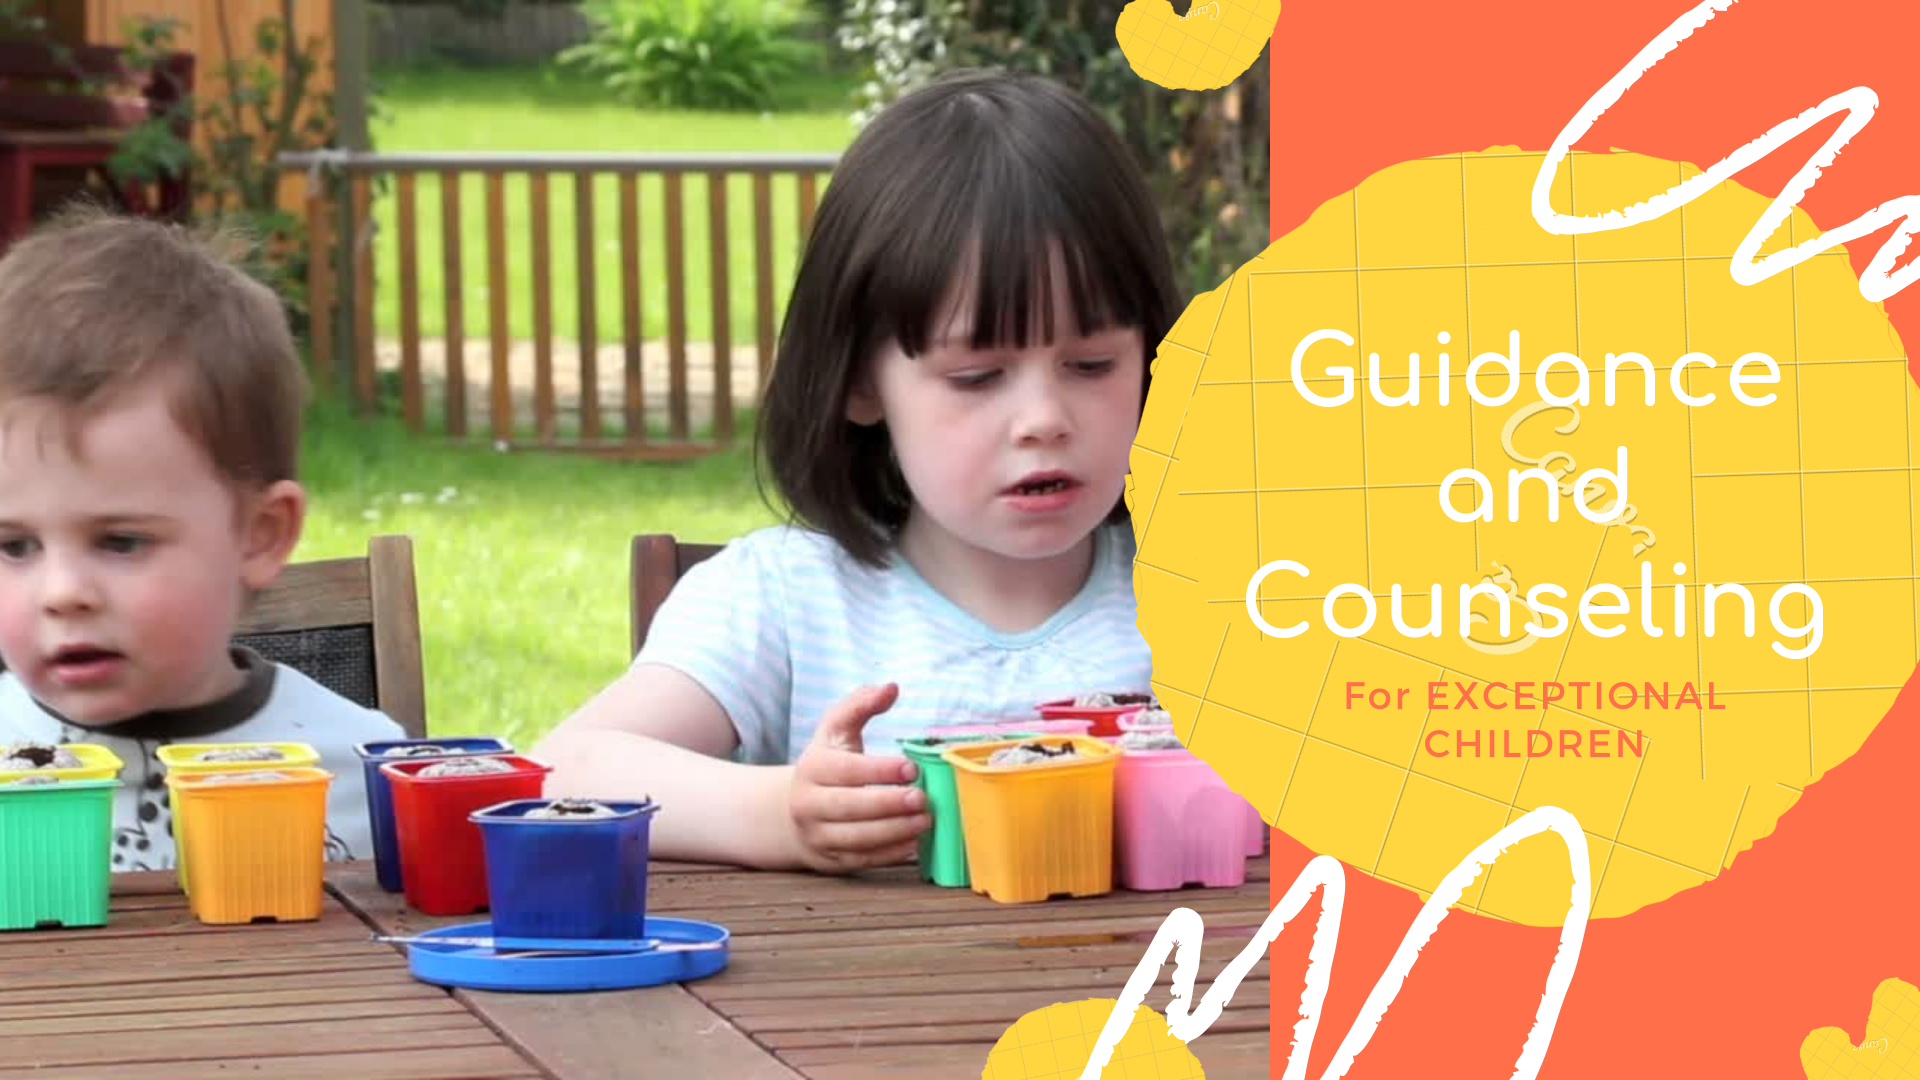 Guidance and Counselling for Exceptional Children